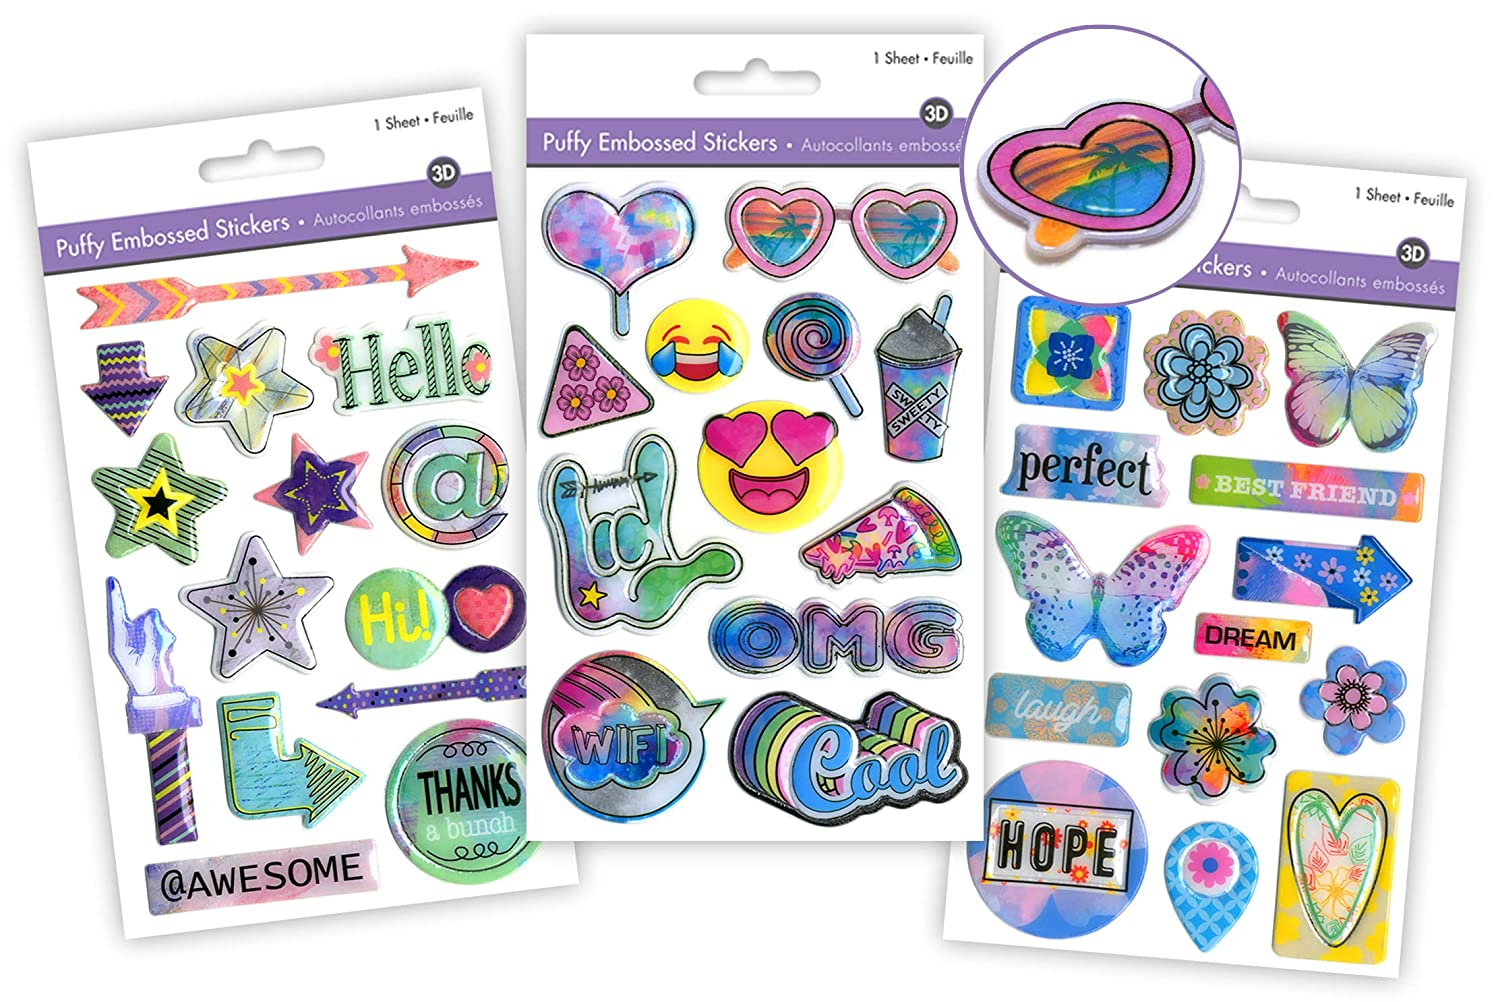 Friends Stickers for Kids Photo Album Scrapbook Kit for Girls Friends Girly Gifts Young Teen Girl Gifts Kids Scrapbook Accessories Scrapbook for Girls Scrapbook for Kids Best Friend Scrapbook 3 Pk